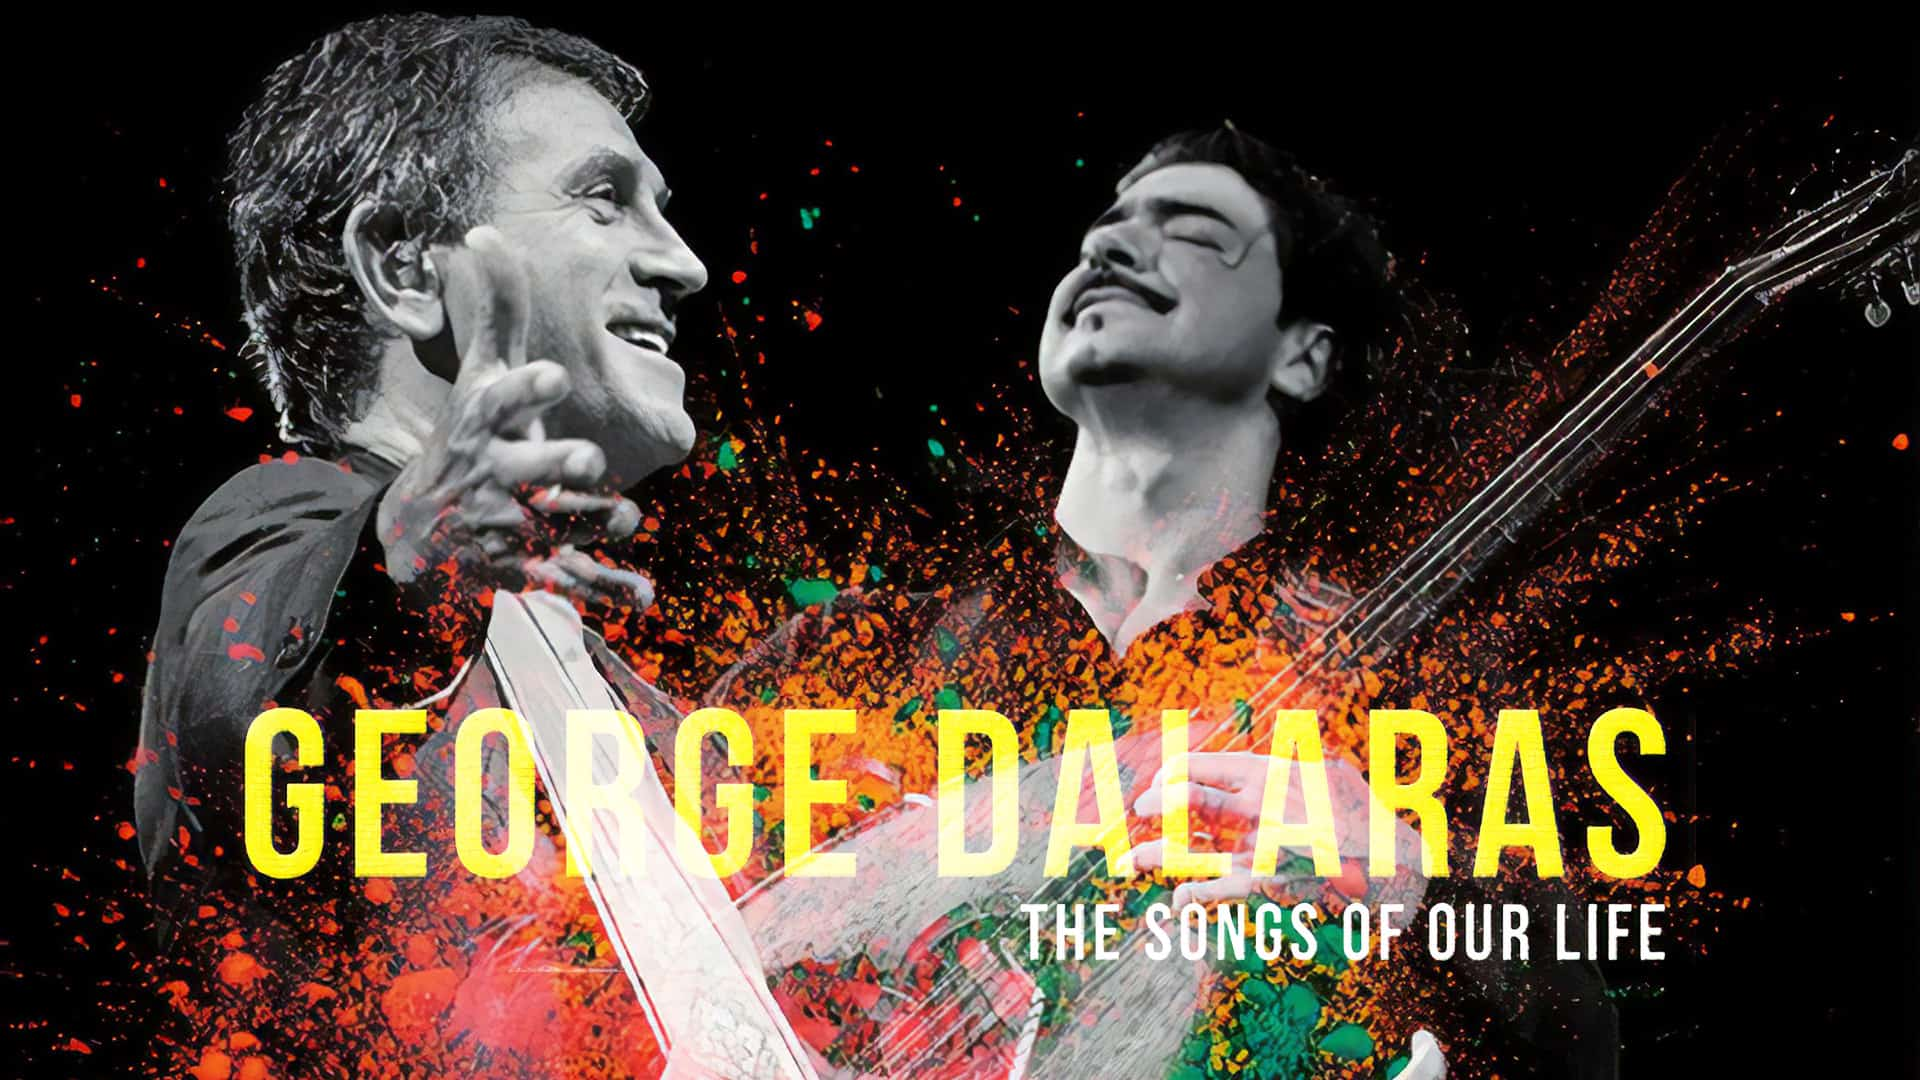 George Dalaras The Songs of our Life